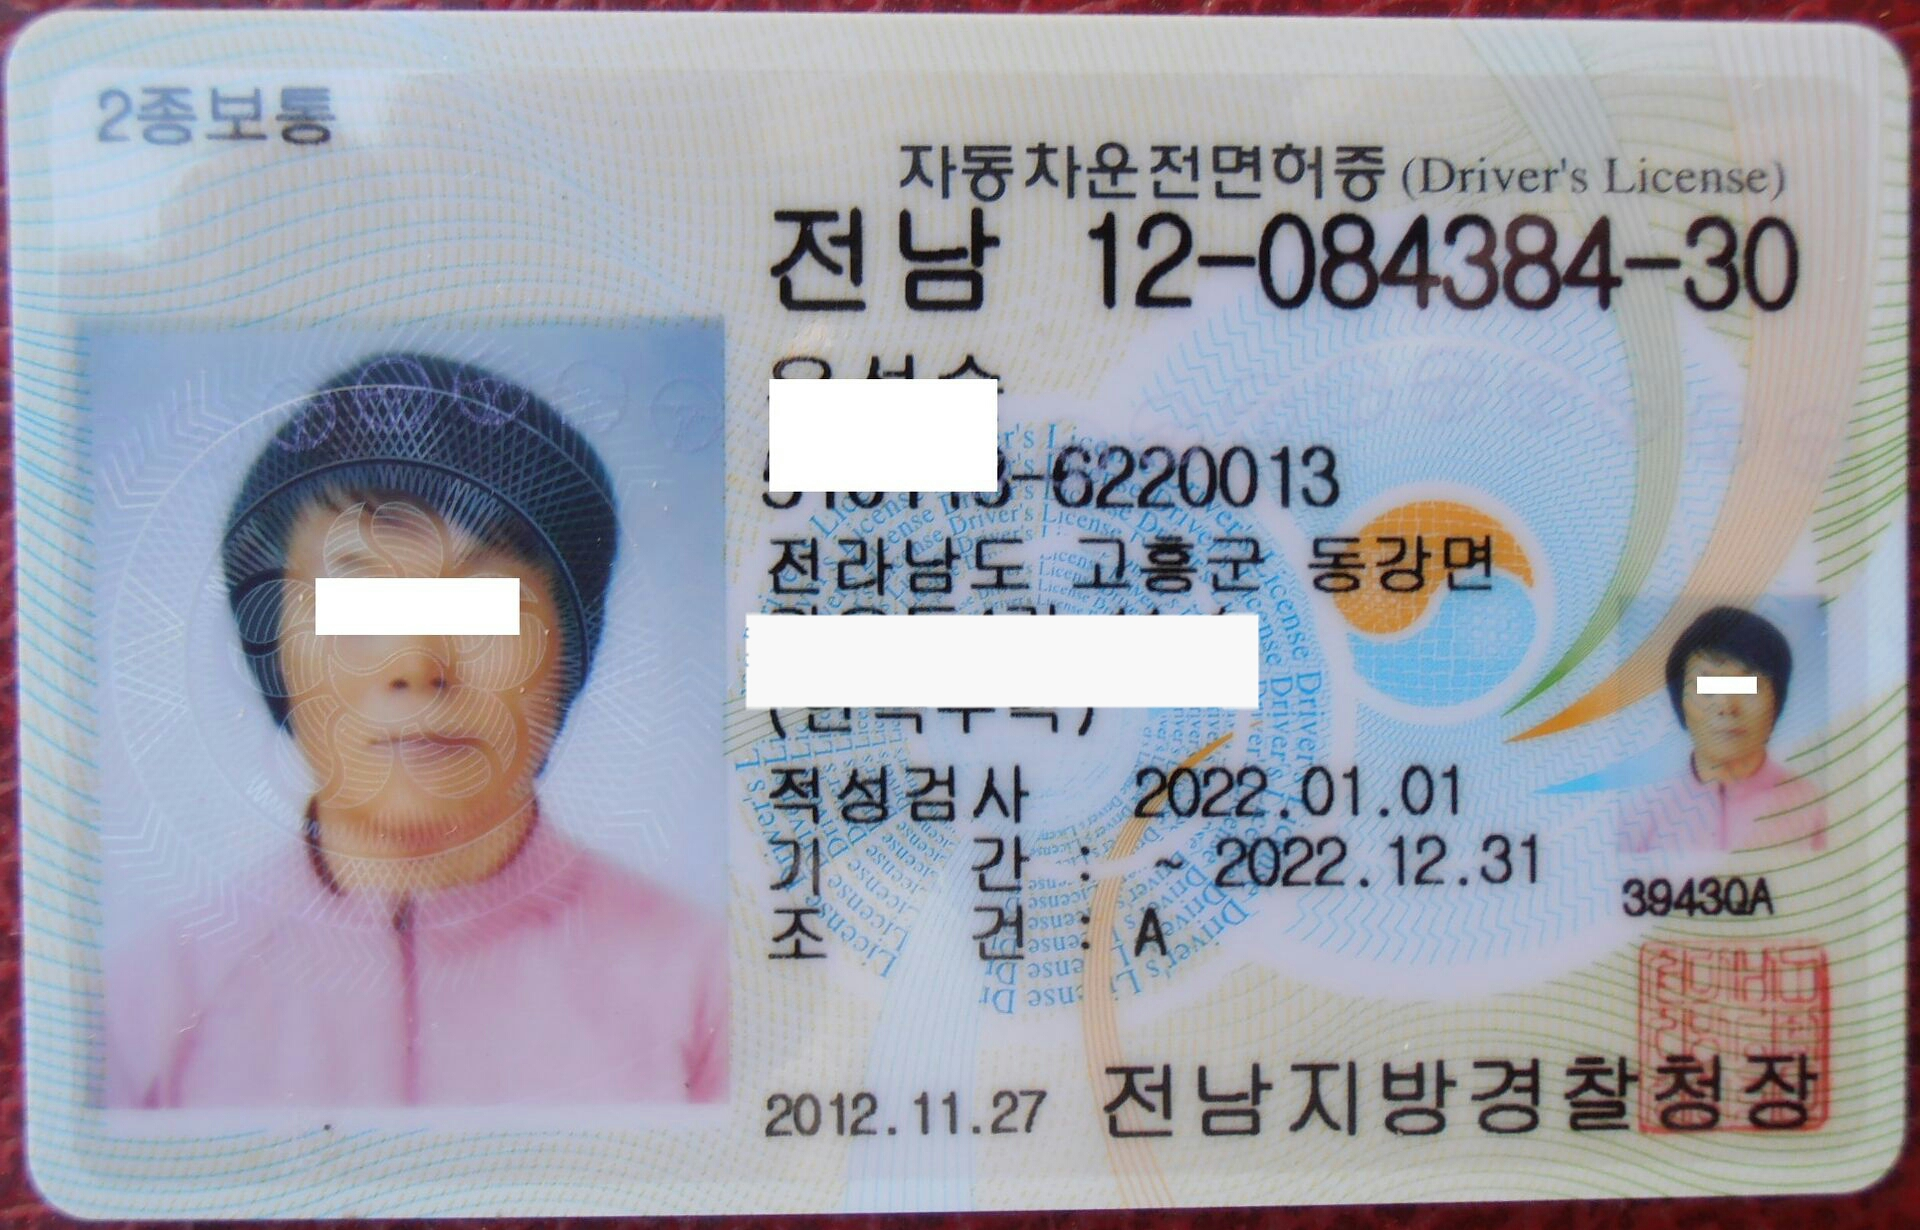 Driving license in South Korea - Wikipedia